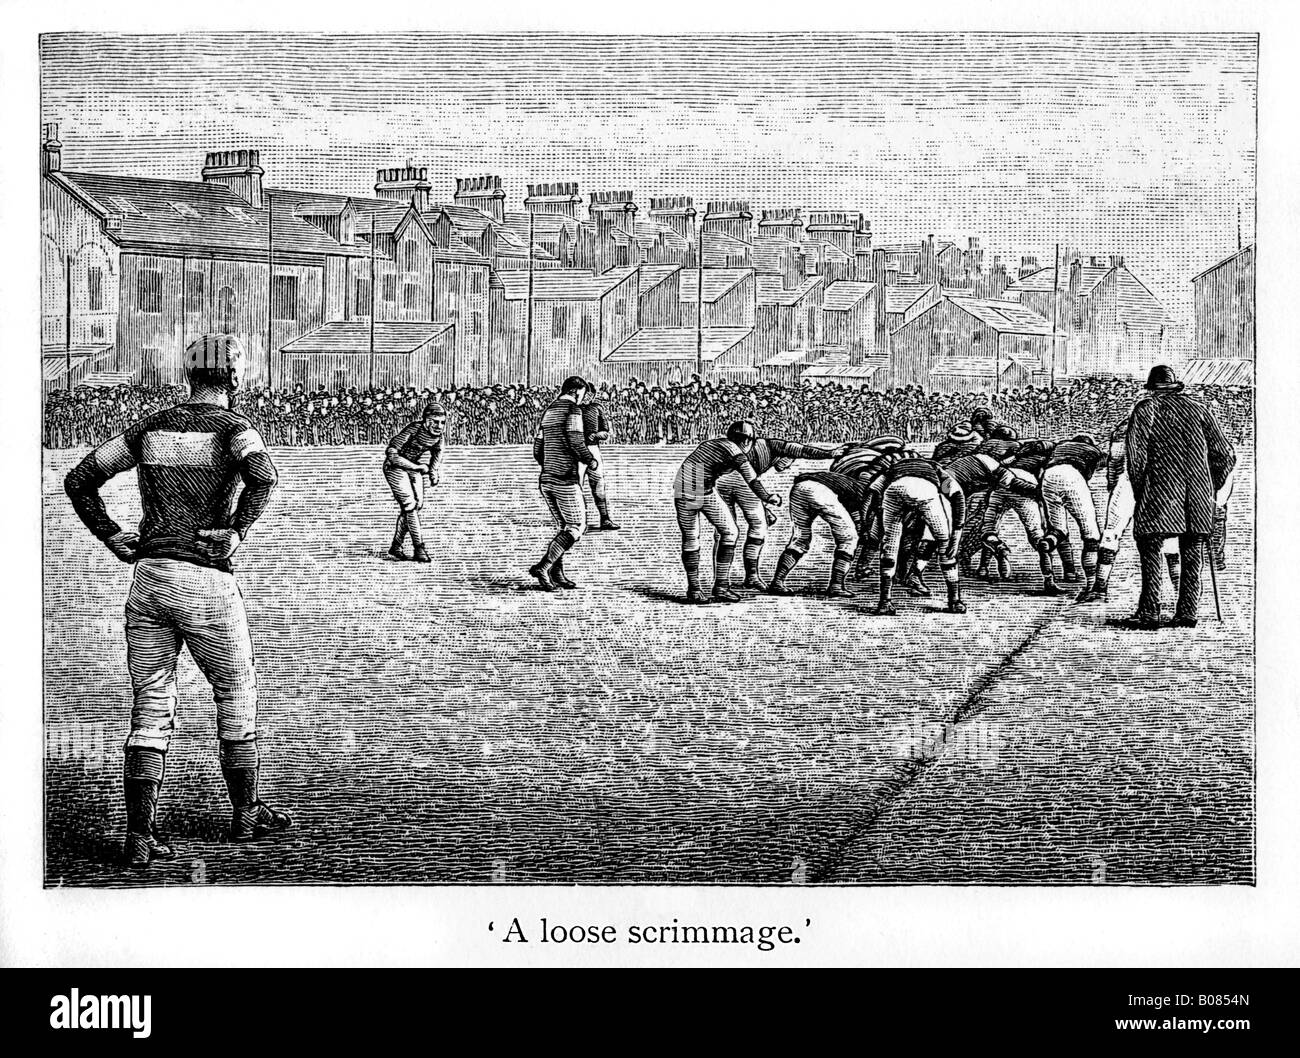 Victorian Rugby A Loose Scrimmage engraving of match action from the 1887 book by Shearman on rugger - Stock Image